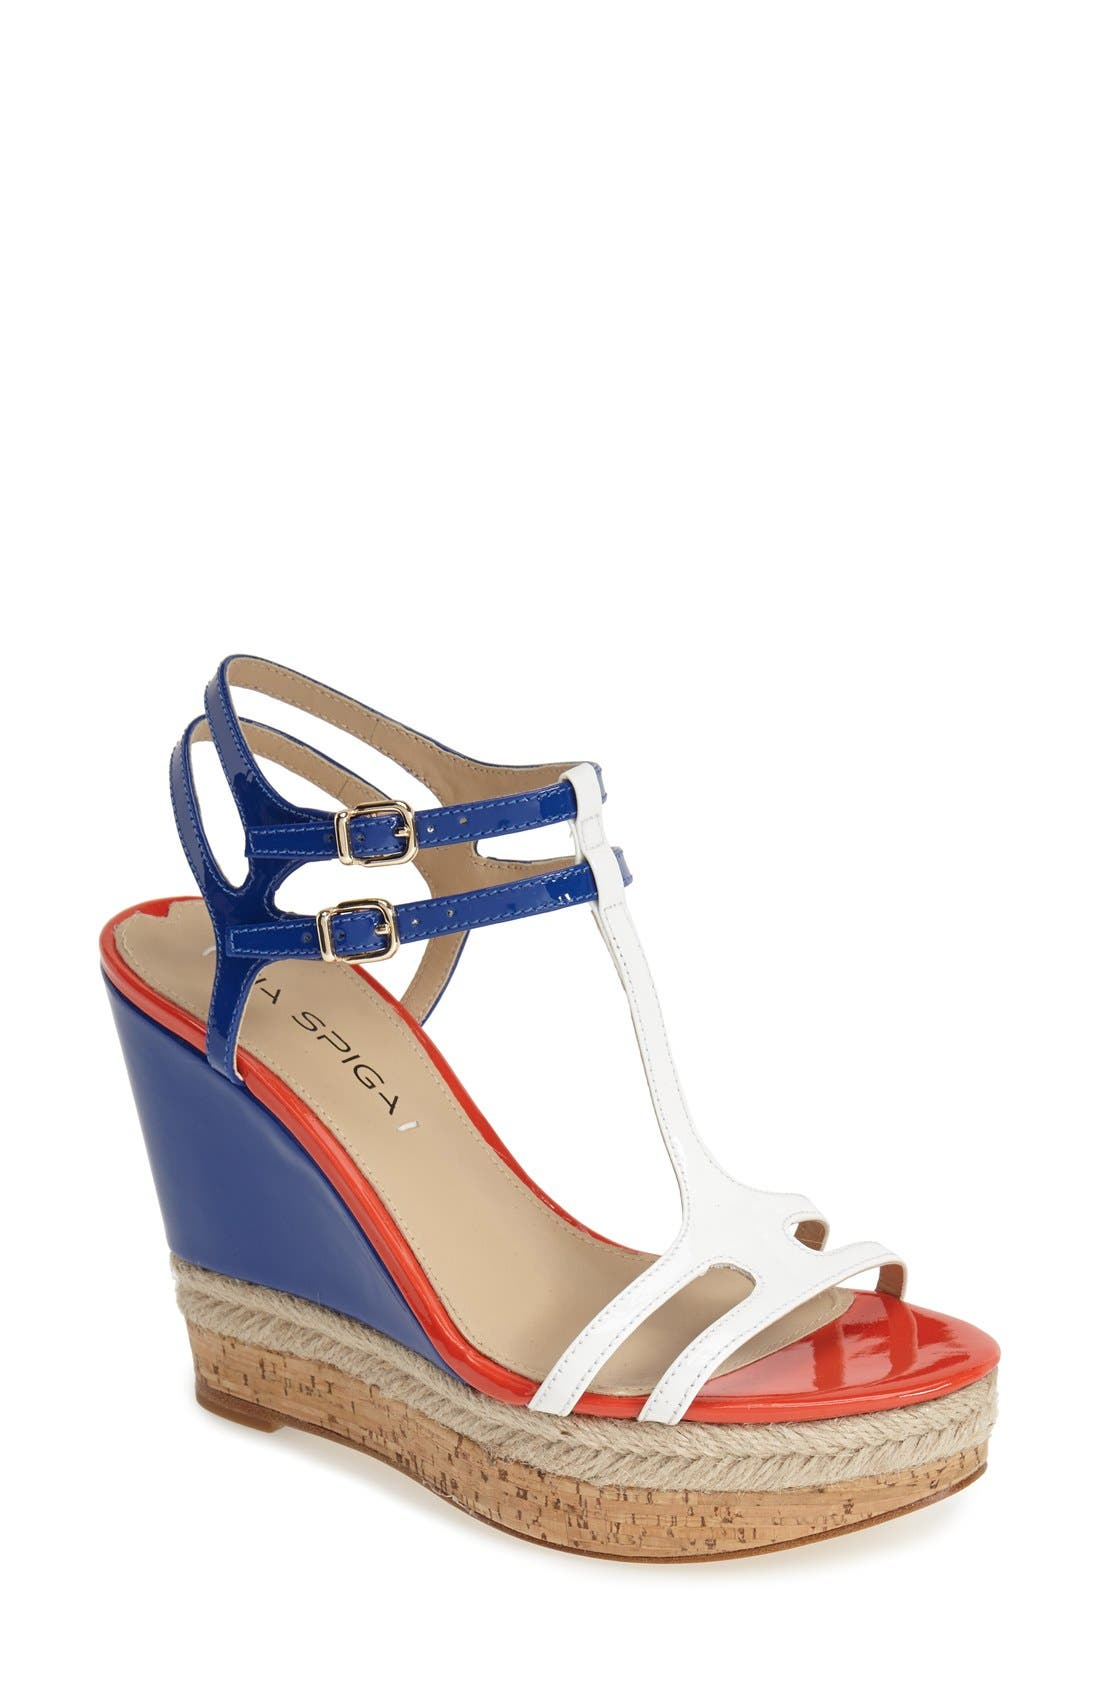 Alternate Image 1 Selected - Via Spiga 'Meza' Leather Dual Ankle Strap Platform Wedge (Women) (Nordstrom Exclusive)